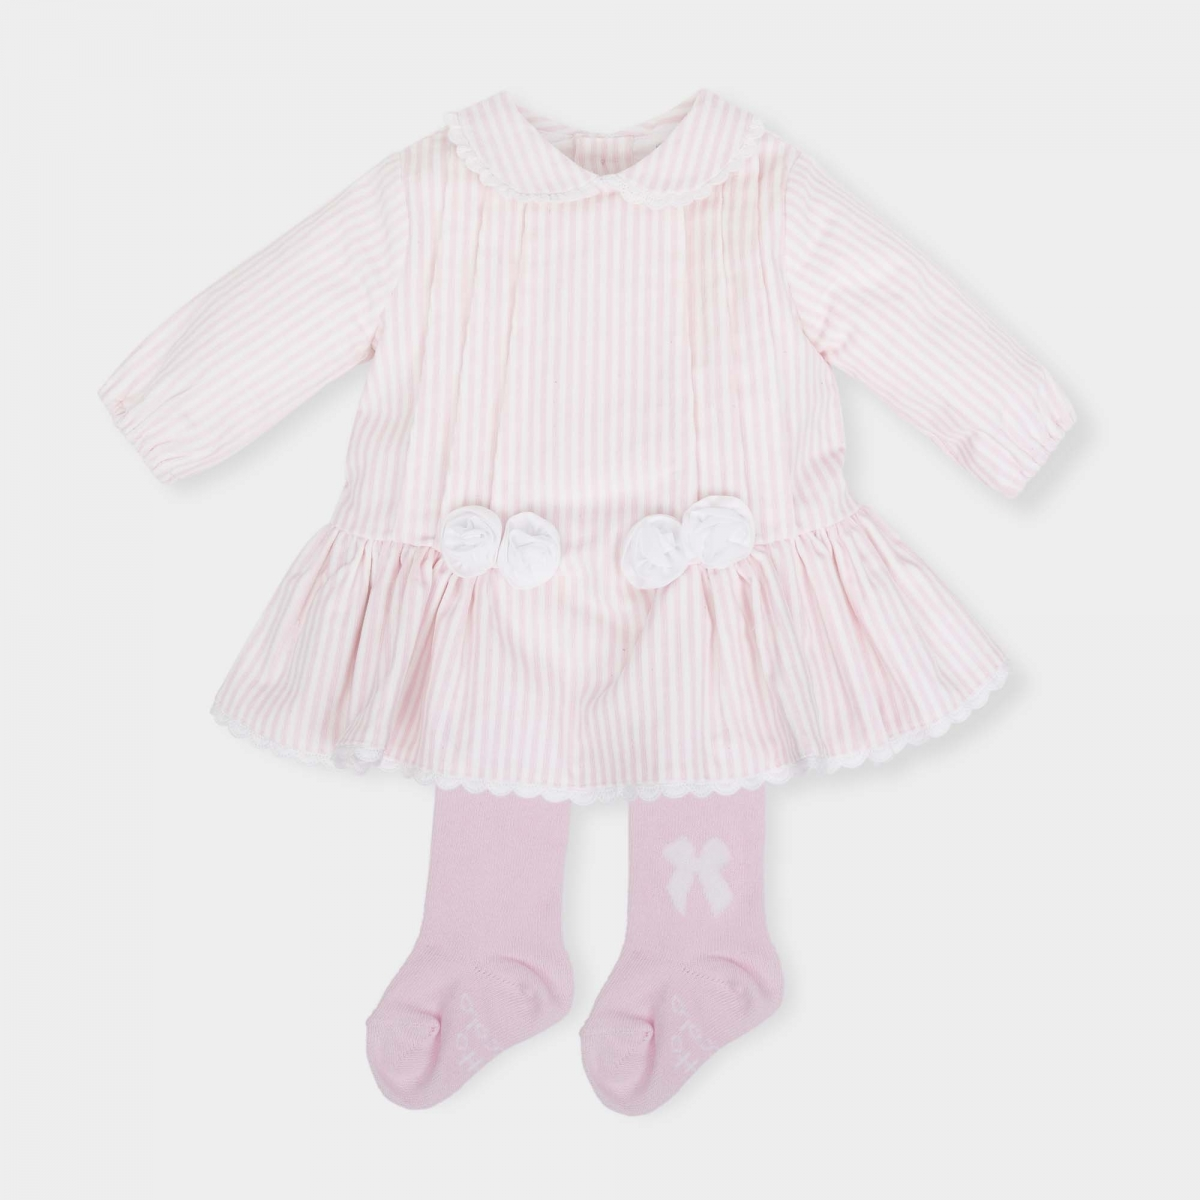 91f08943f Tutto Piccolo Baby Pink Dress With Tights - little Boppers